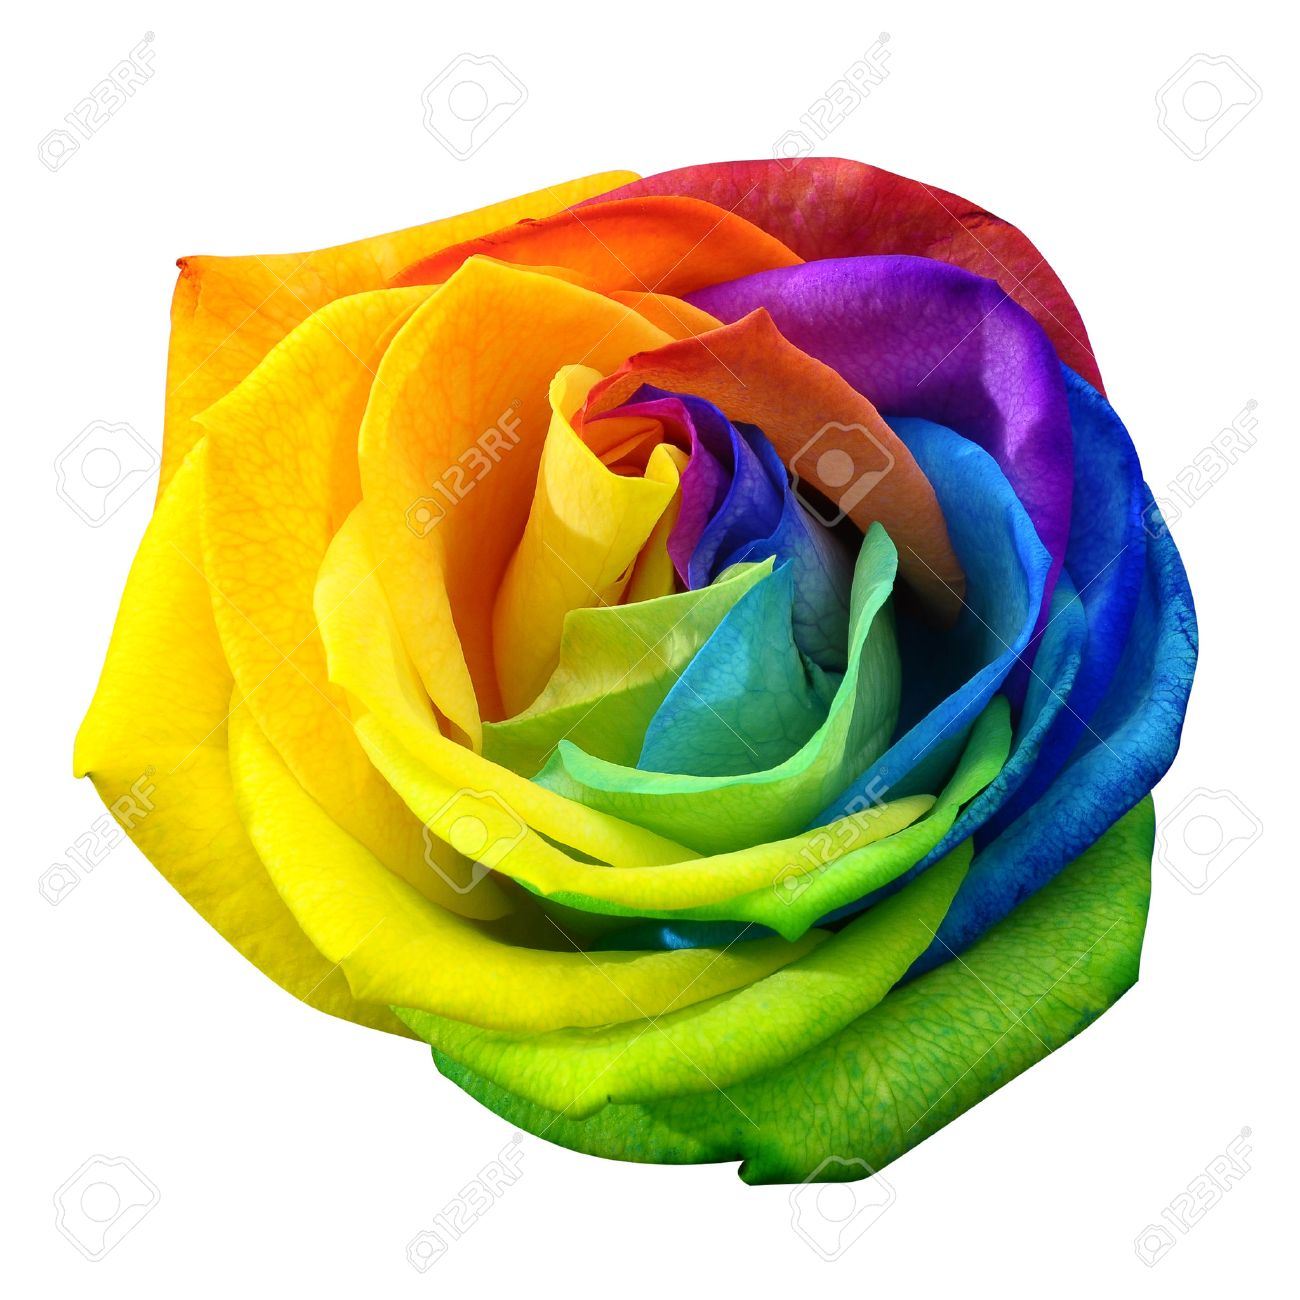 rainbow flower images u0026 stock pictures royalty free rainbow